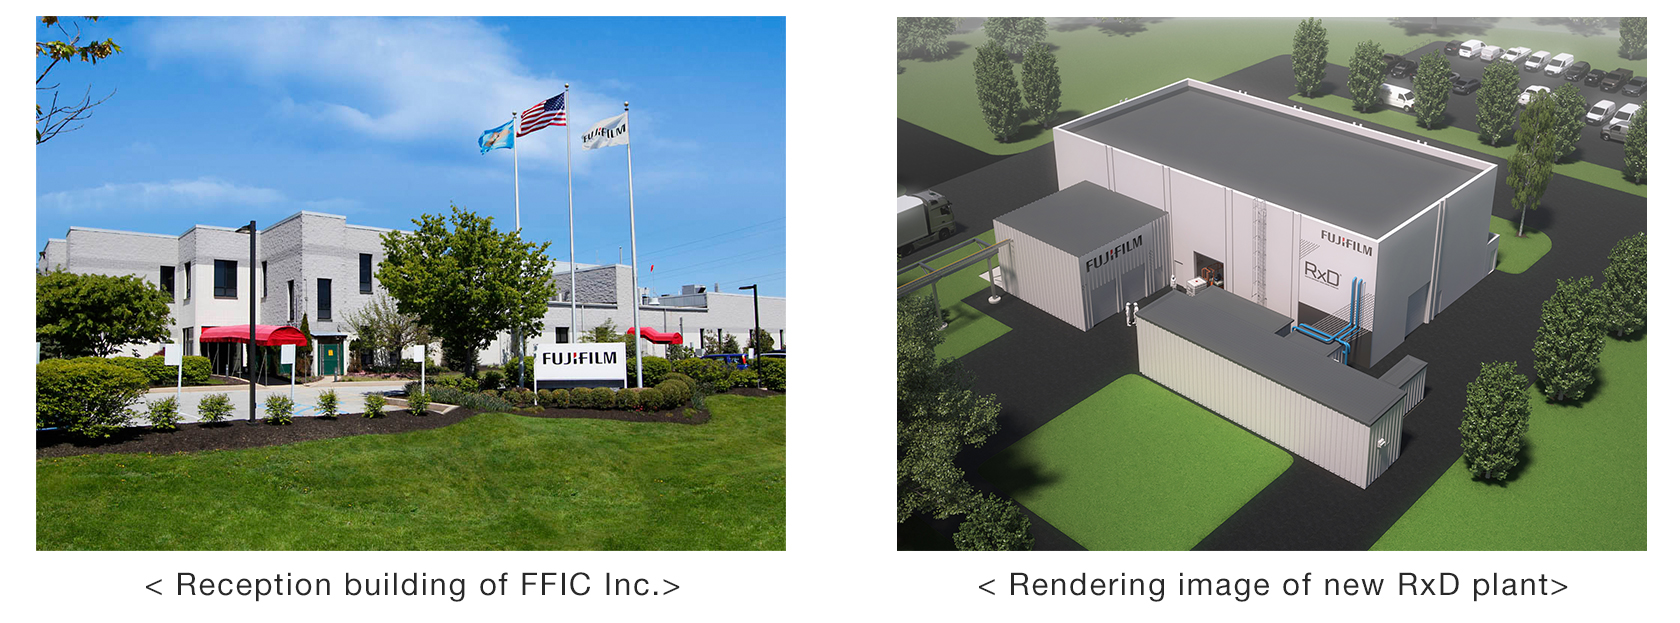 [Image] Reception building of FFIC Inc. / Rendering image of new RxD plant